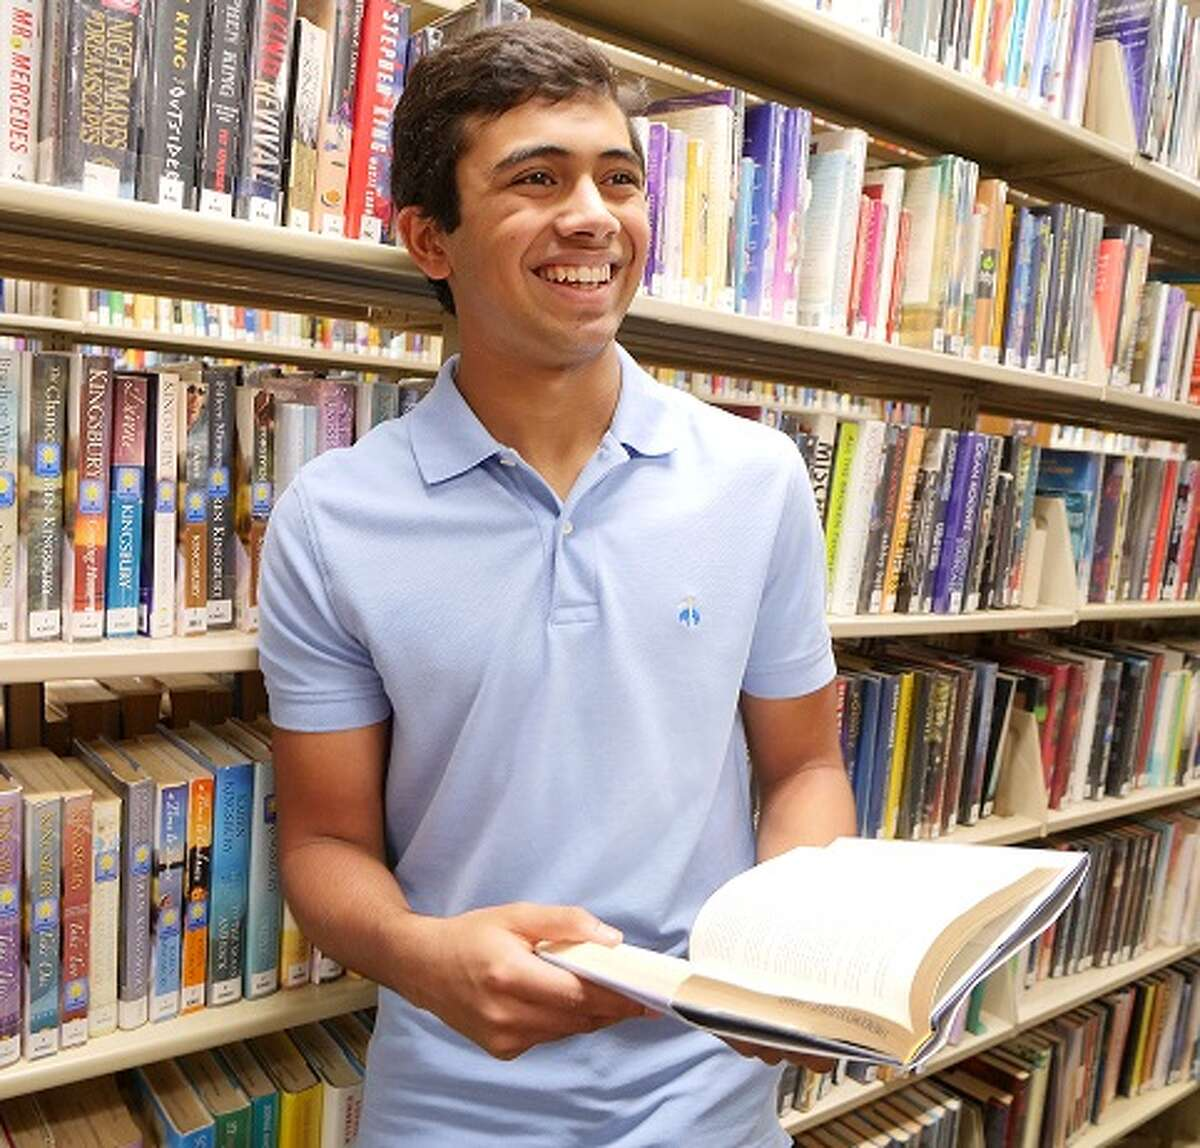 Friendswood High School sophomore Arnav Goel, shown, and Clear Lake High School graduate Raaghav Kavuri founded Act Kind Organization to collect resources - including donated library books - for those in need during the pandemic.